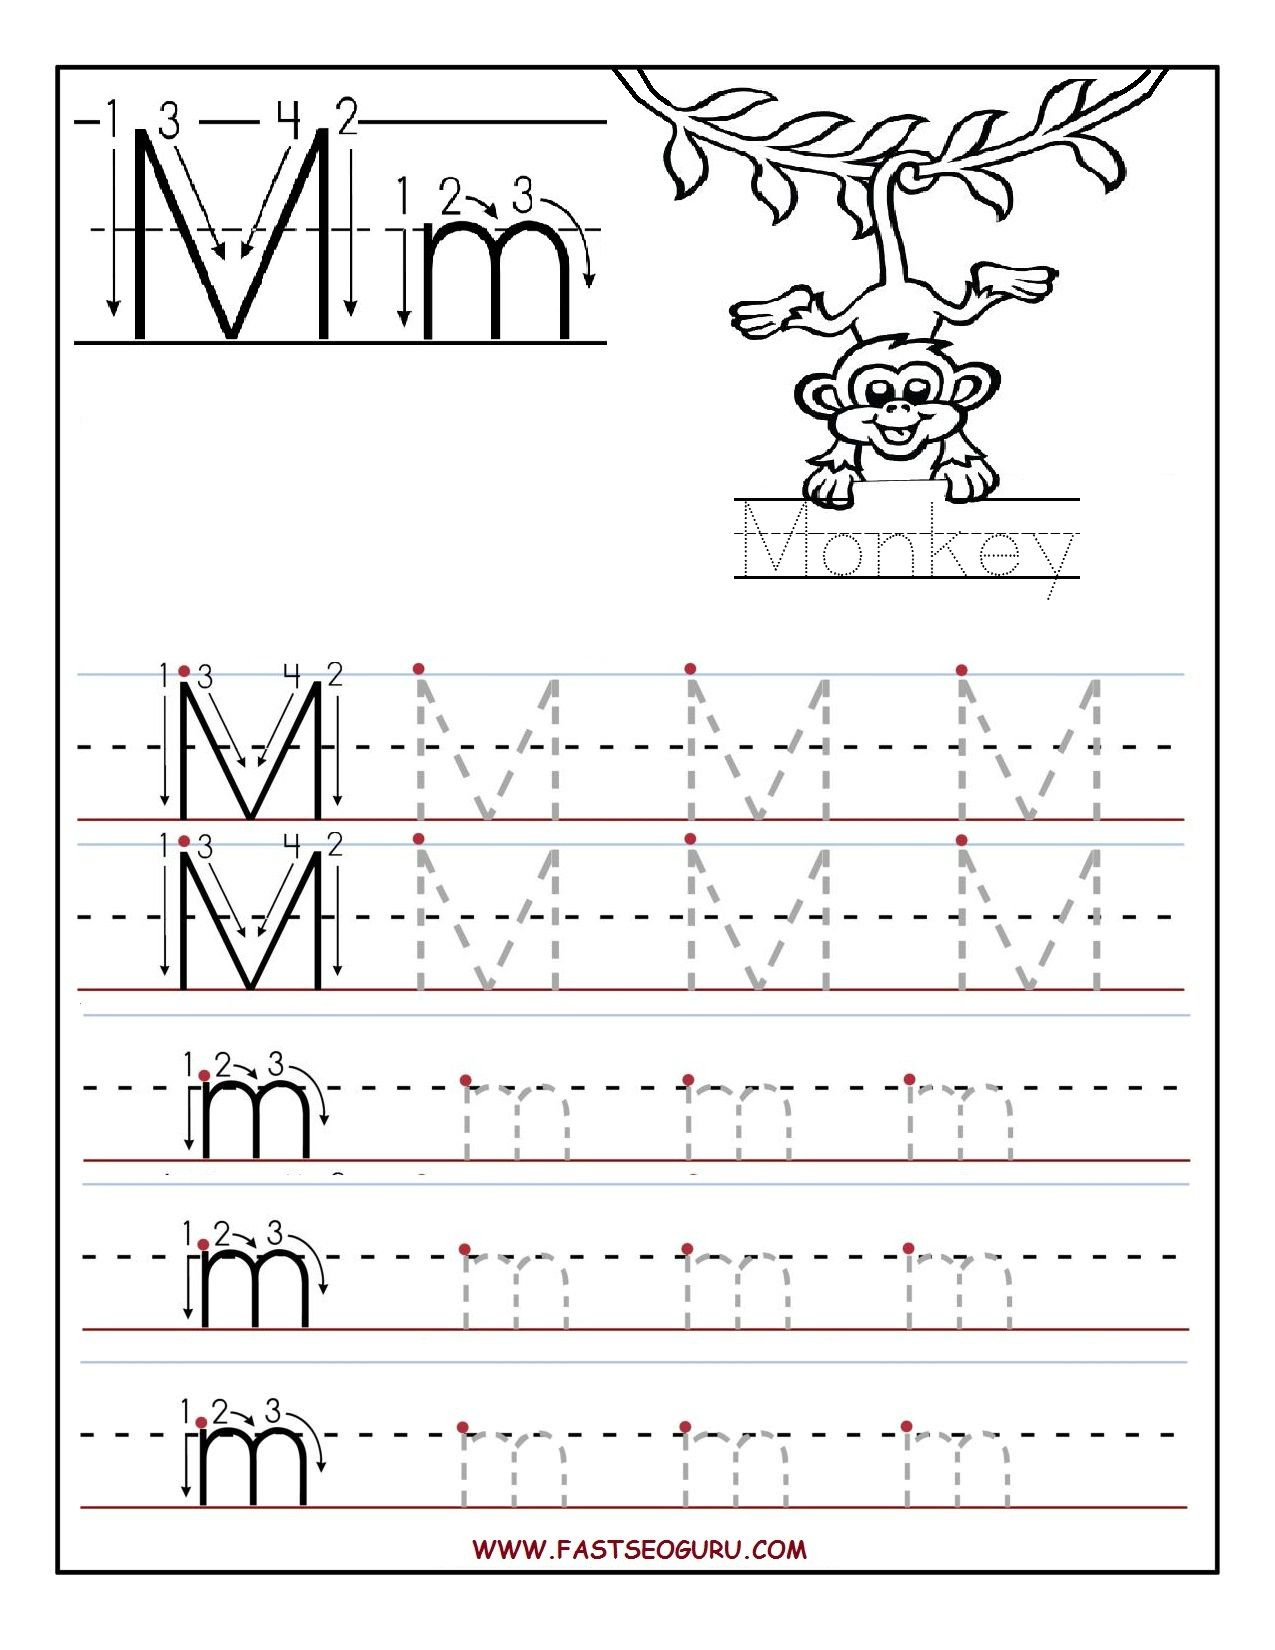 Printable Letter M Tracing Worksheets For Preschool within Letter M Tracing Page